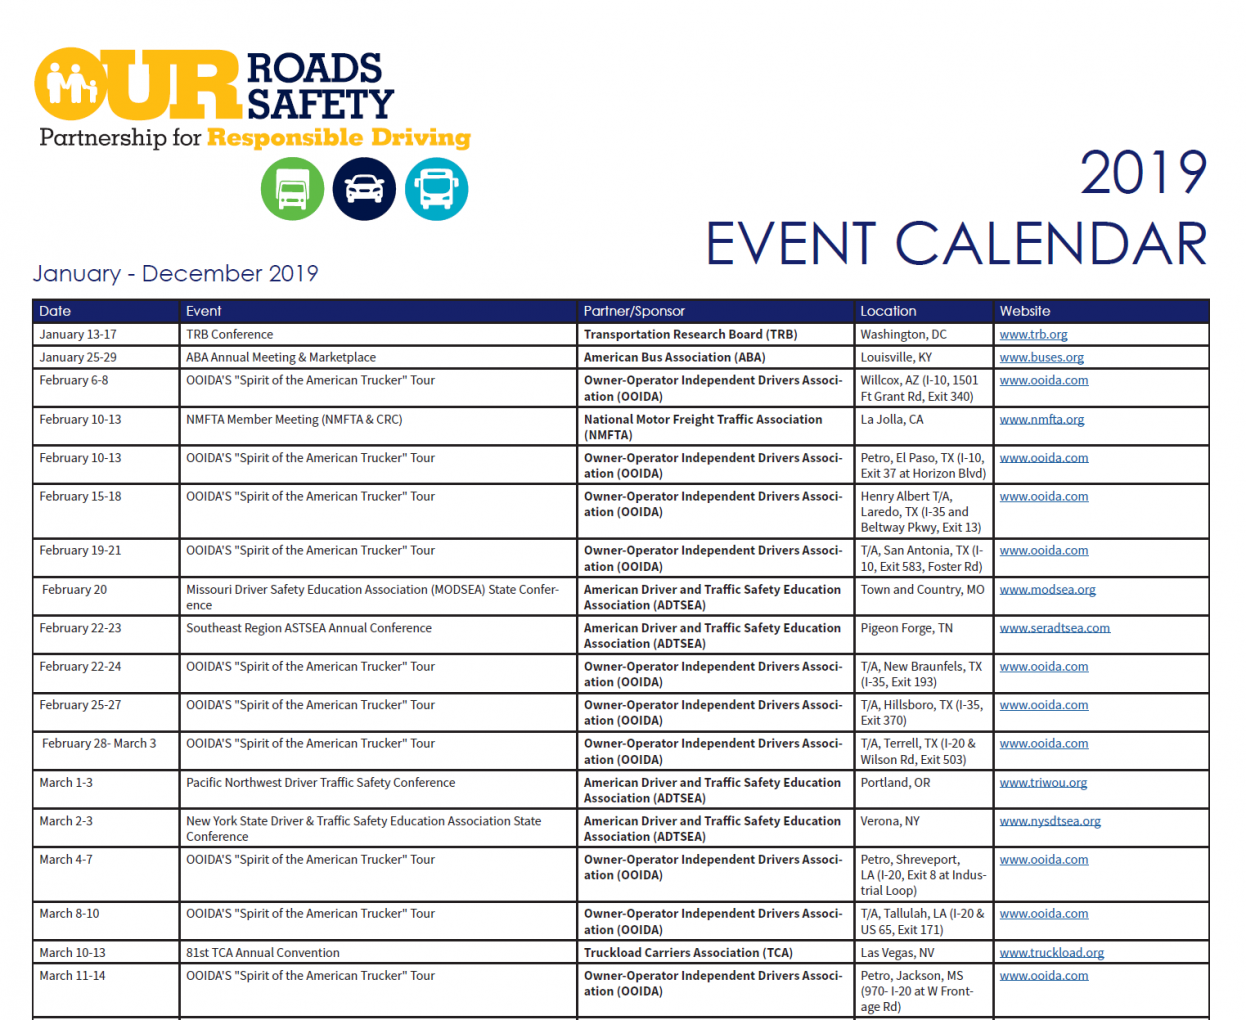 Our Roads Our Safety 2019 Event Calendar